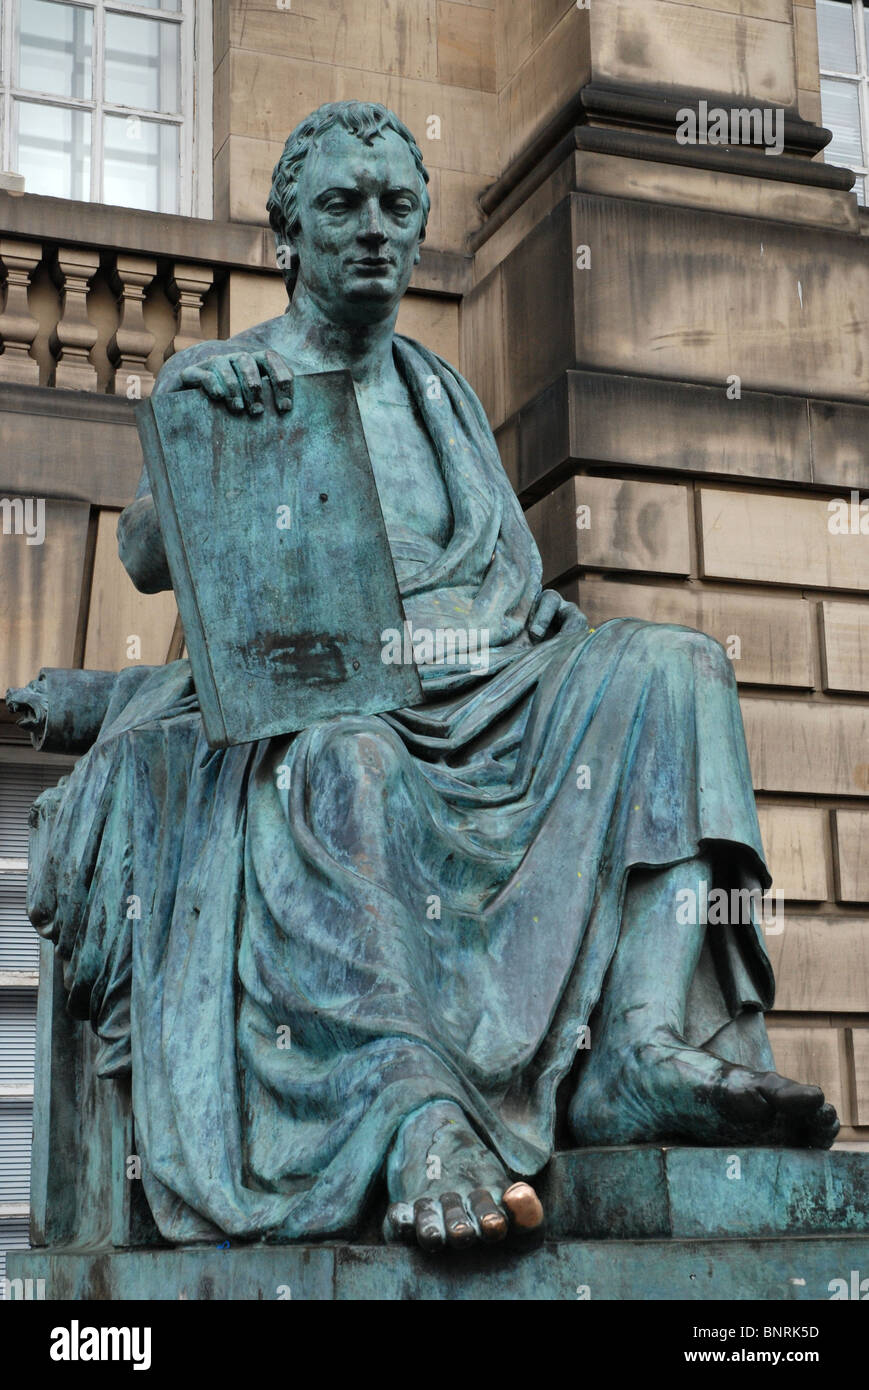 Statue of the philosopher and historian David Hume by sculptor Sandy Stoddart on Edinburgh's Royal Mile. - Stock Image